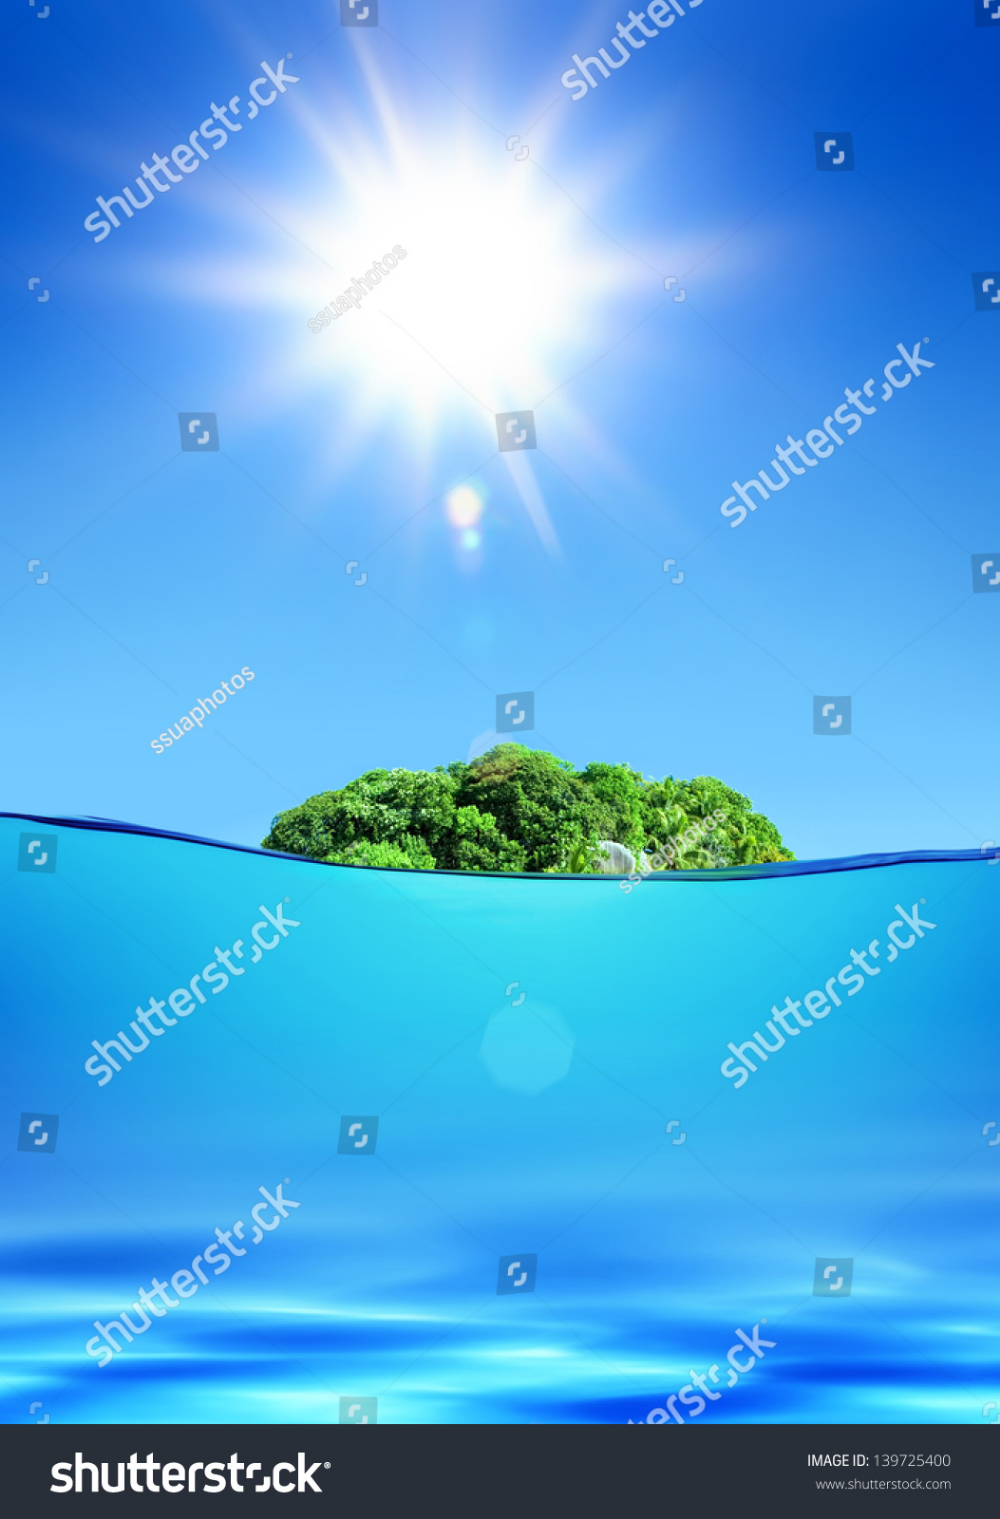 Download Deserted Green Tropical Island Under Shiny Sun In Ocean Royalty Free Images Stock Photography Photography In 2020 Ocean Images Tropical Islands Scenic